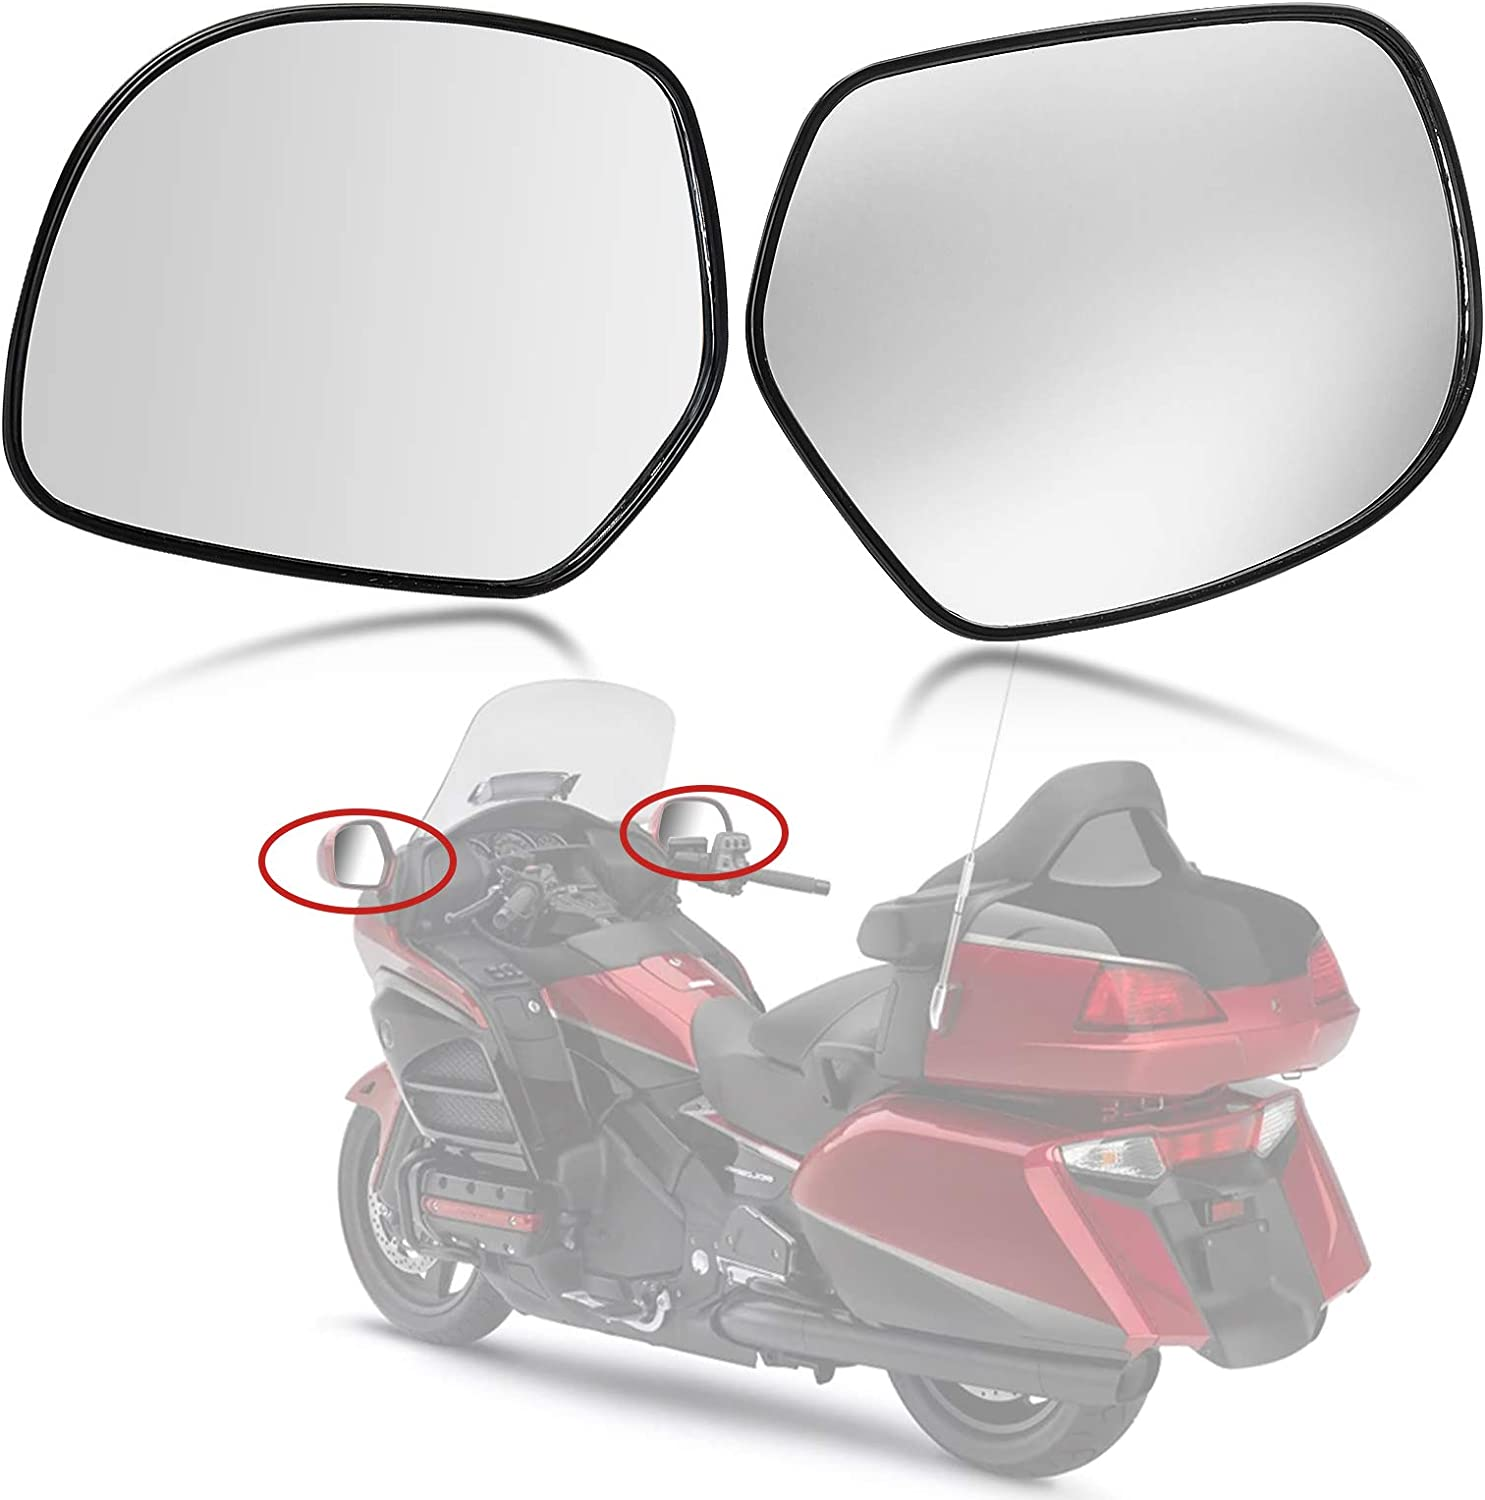 Max 67% OFF psler Free Shipping New Motorcycle Rear view Mirrors 2001- For 1800 GoldWing Honda